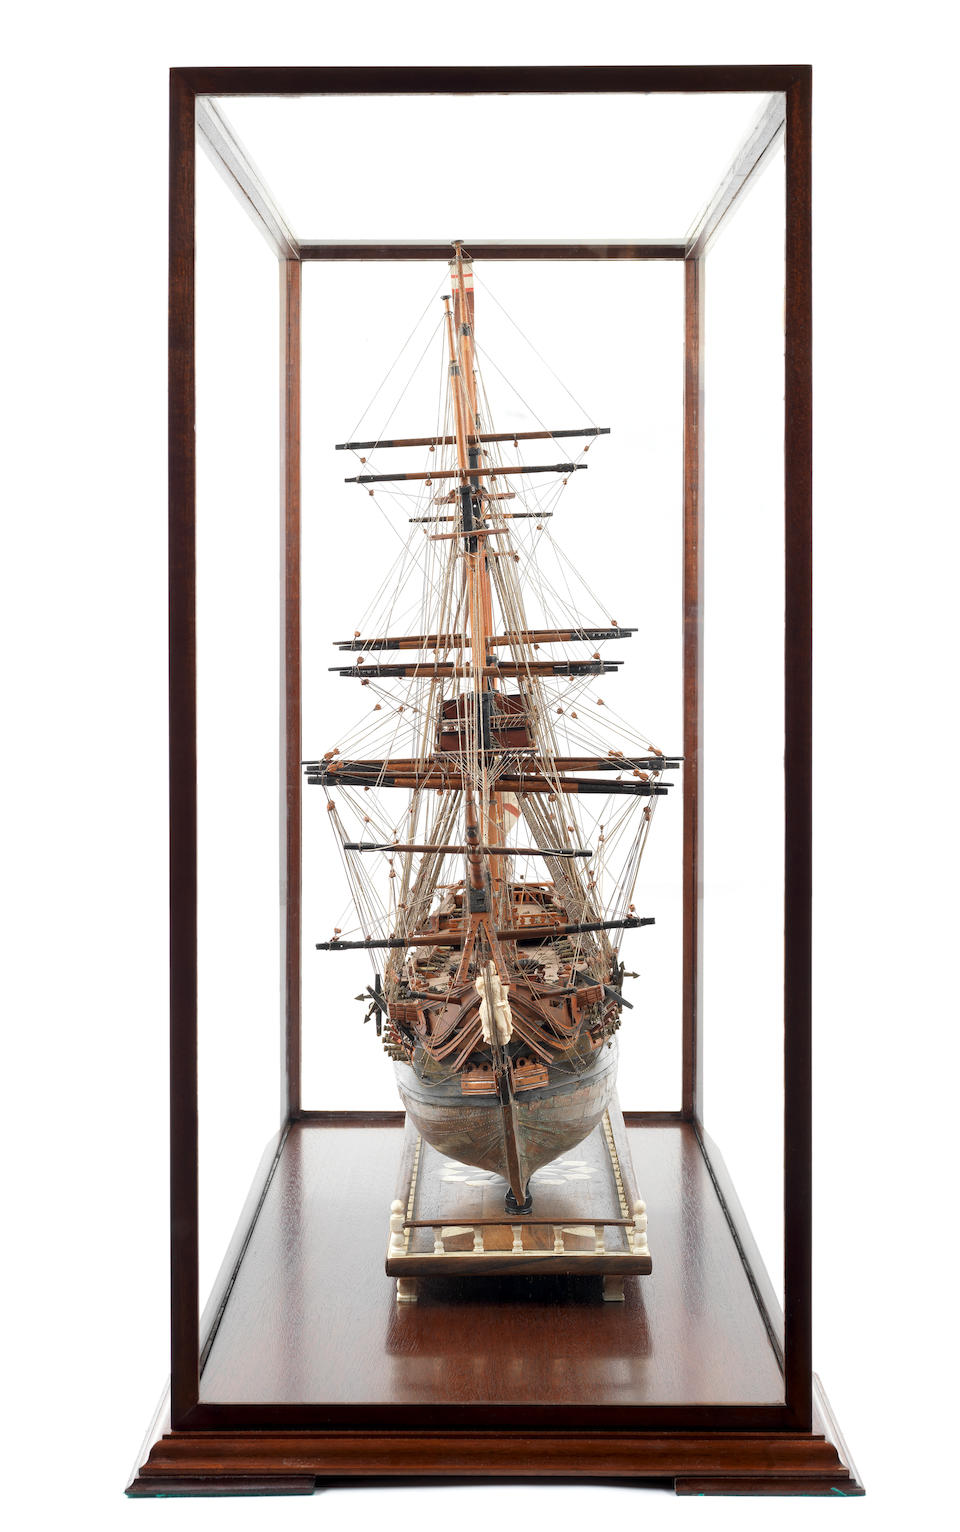 A fine Prisoner-of-War boxwood model of the first class ship of the line HMS Foudroyant,  early 19th century,  the case 76 x 89 x 39cm (30 x 35 x 15 1/2in).